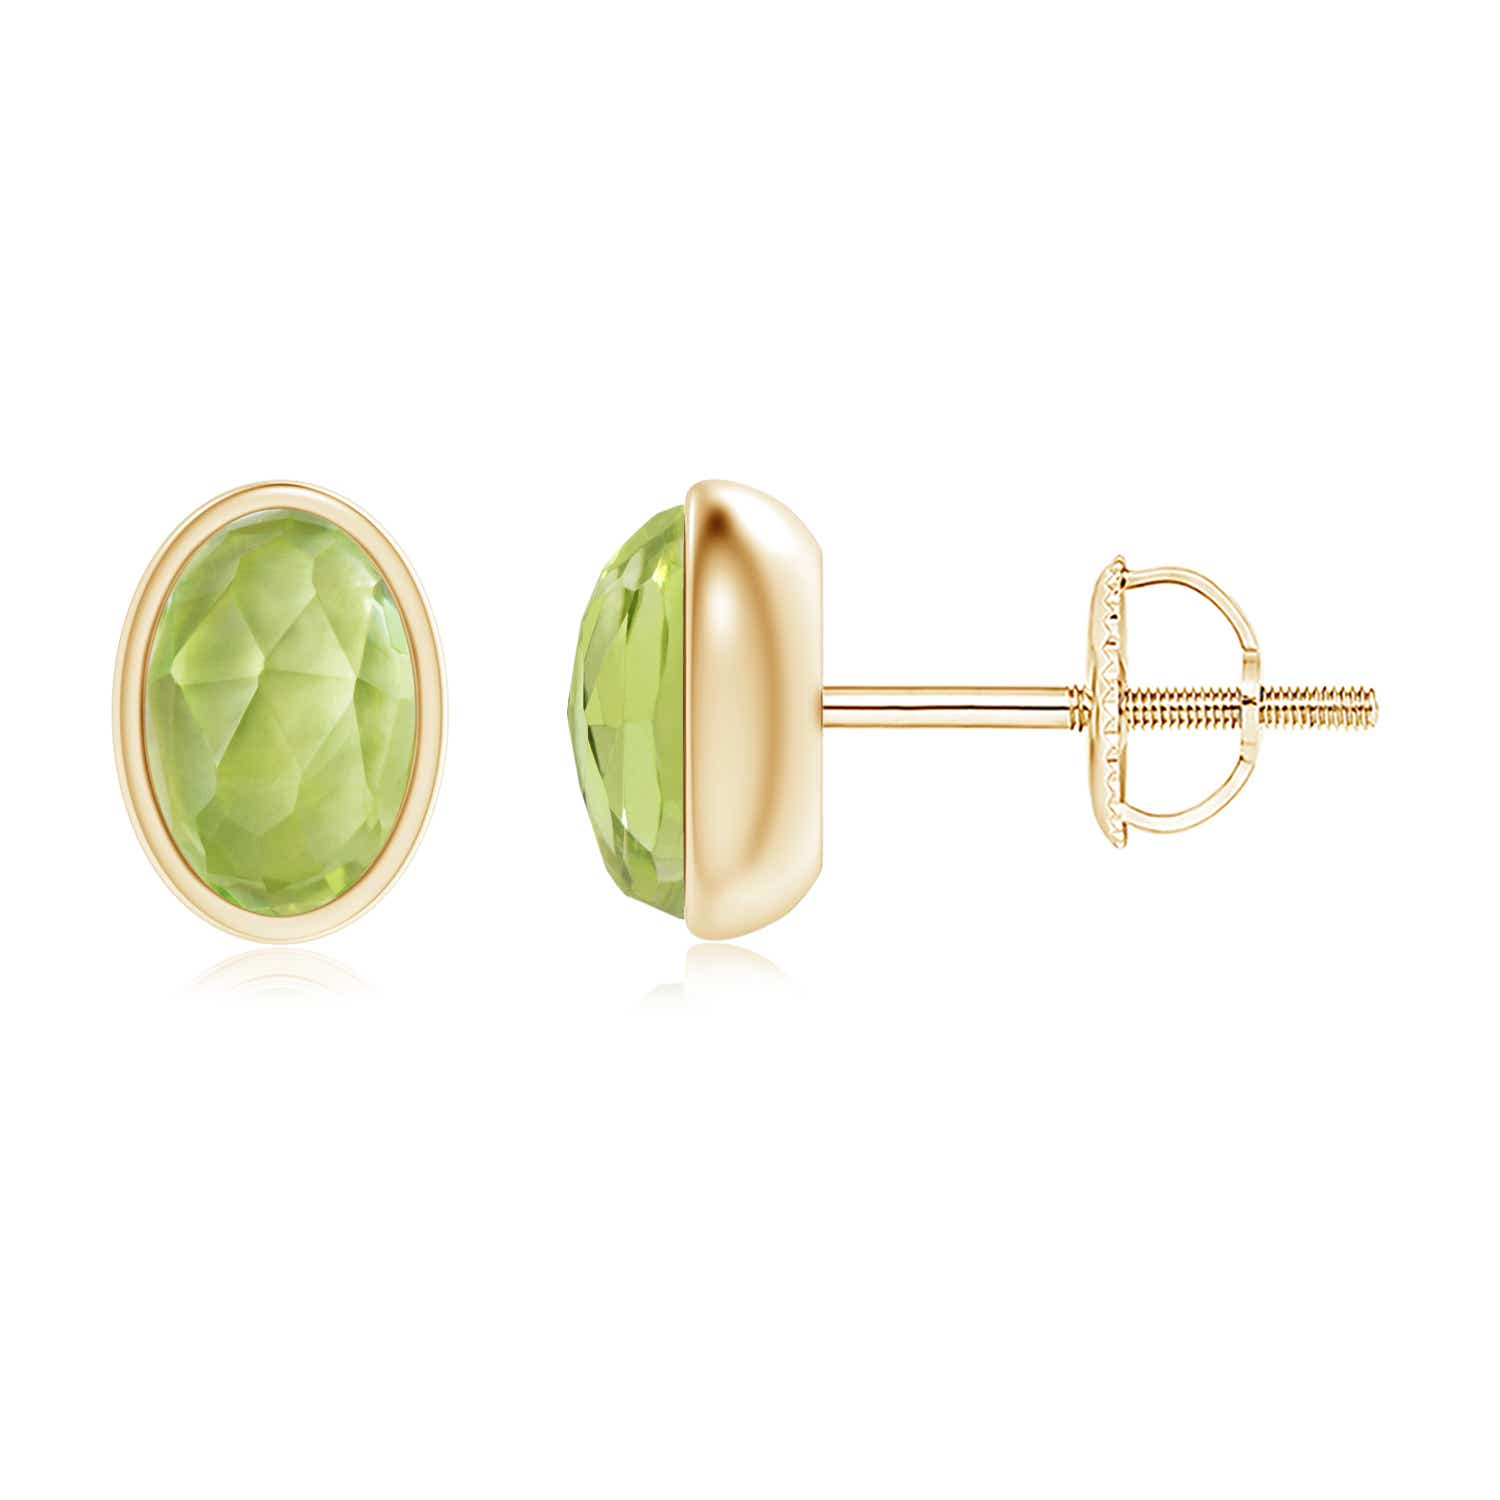 Bezel Set Oval Peridot Solitaire Stud Earrings - Angara.com